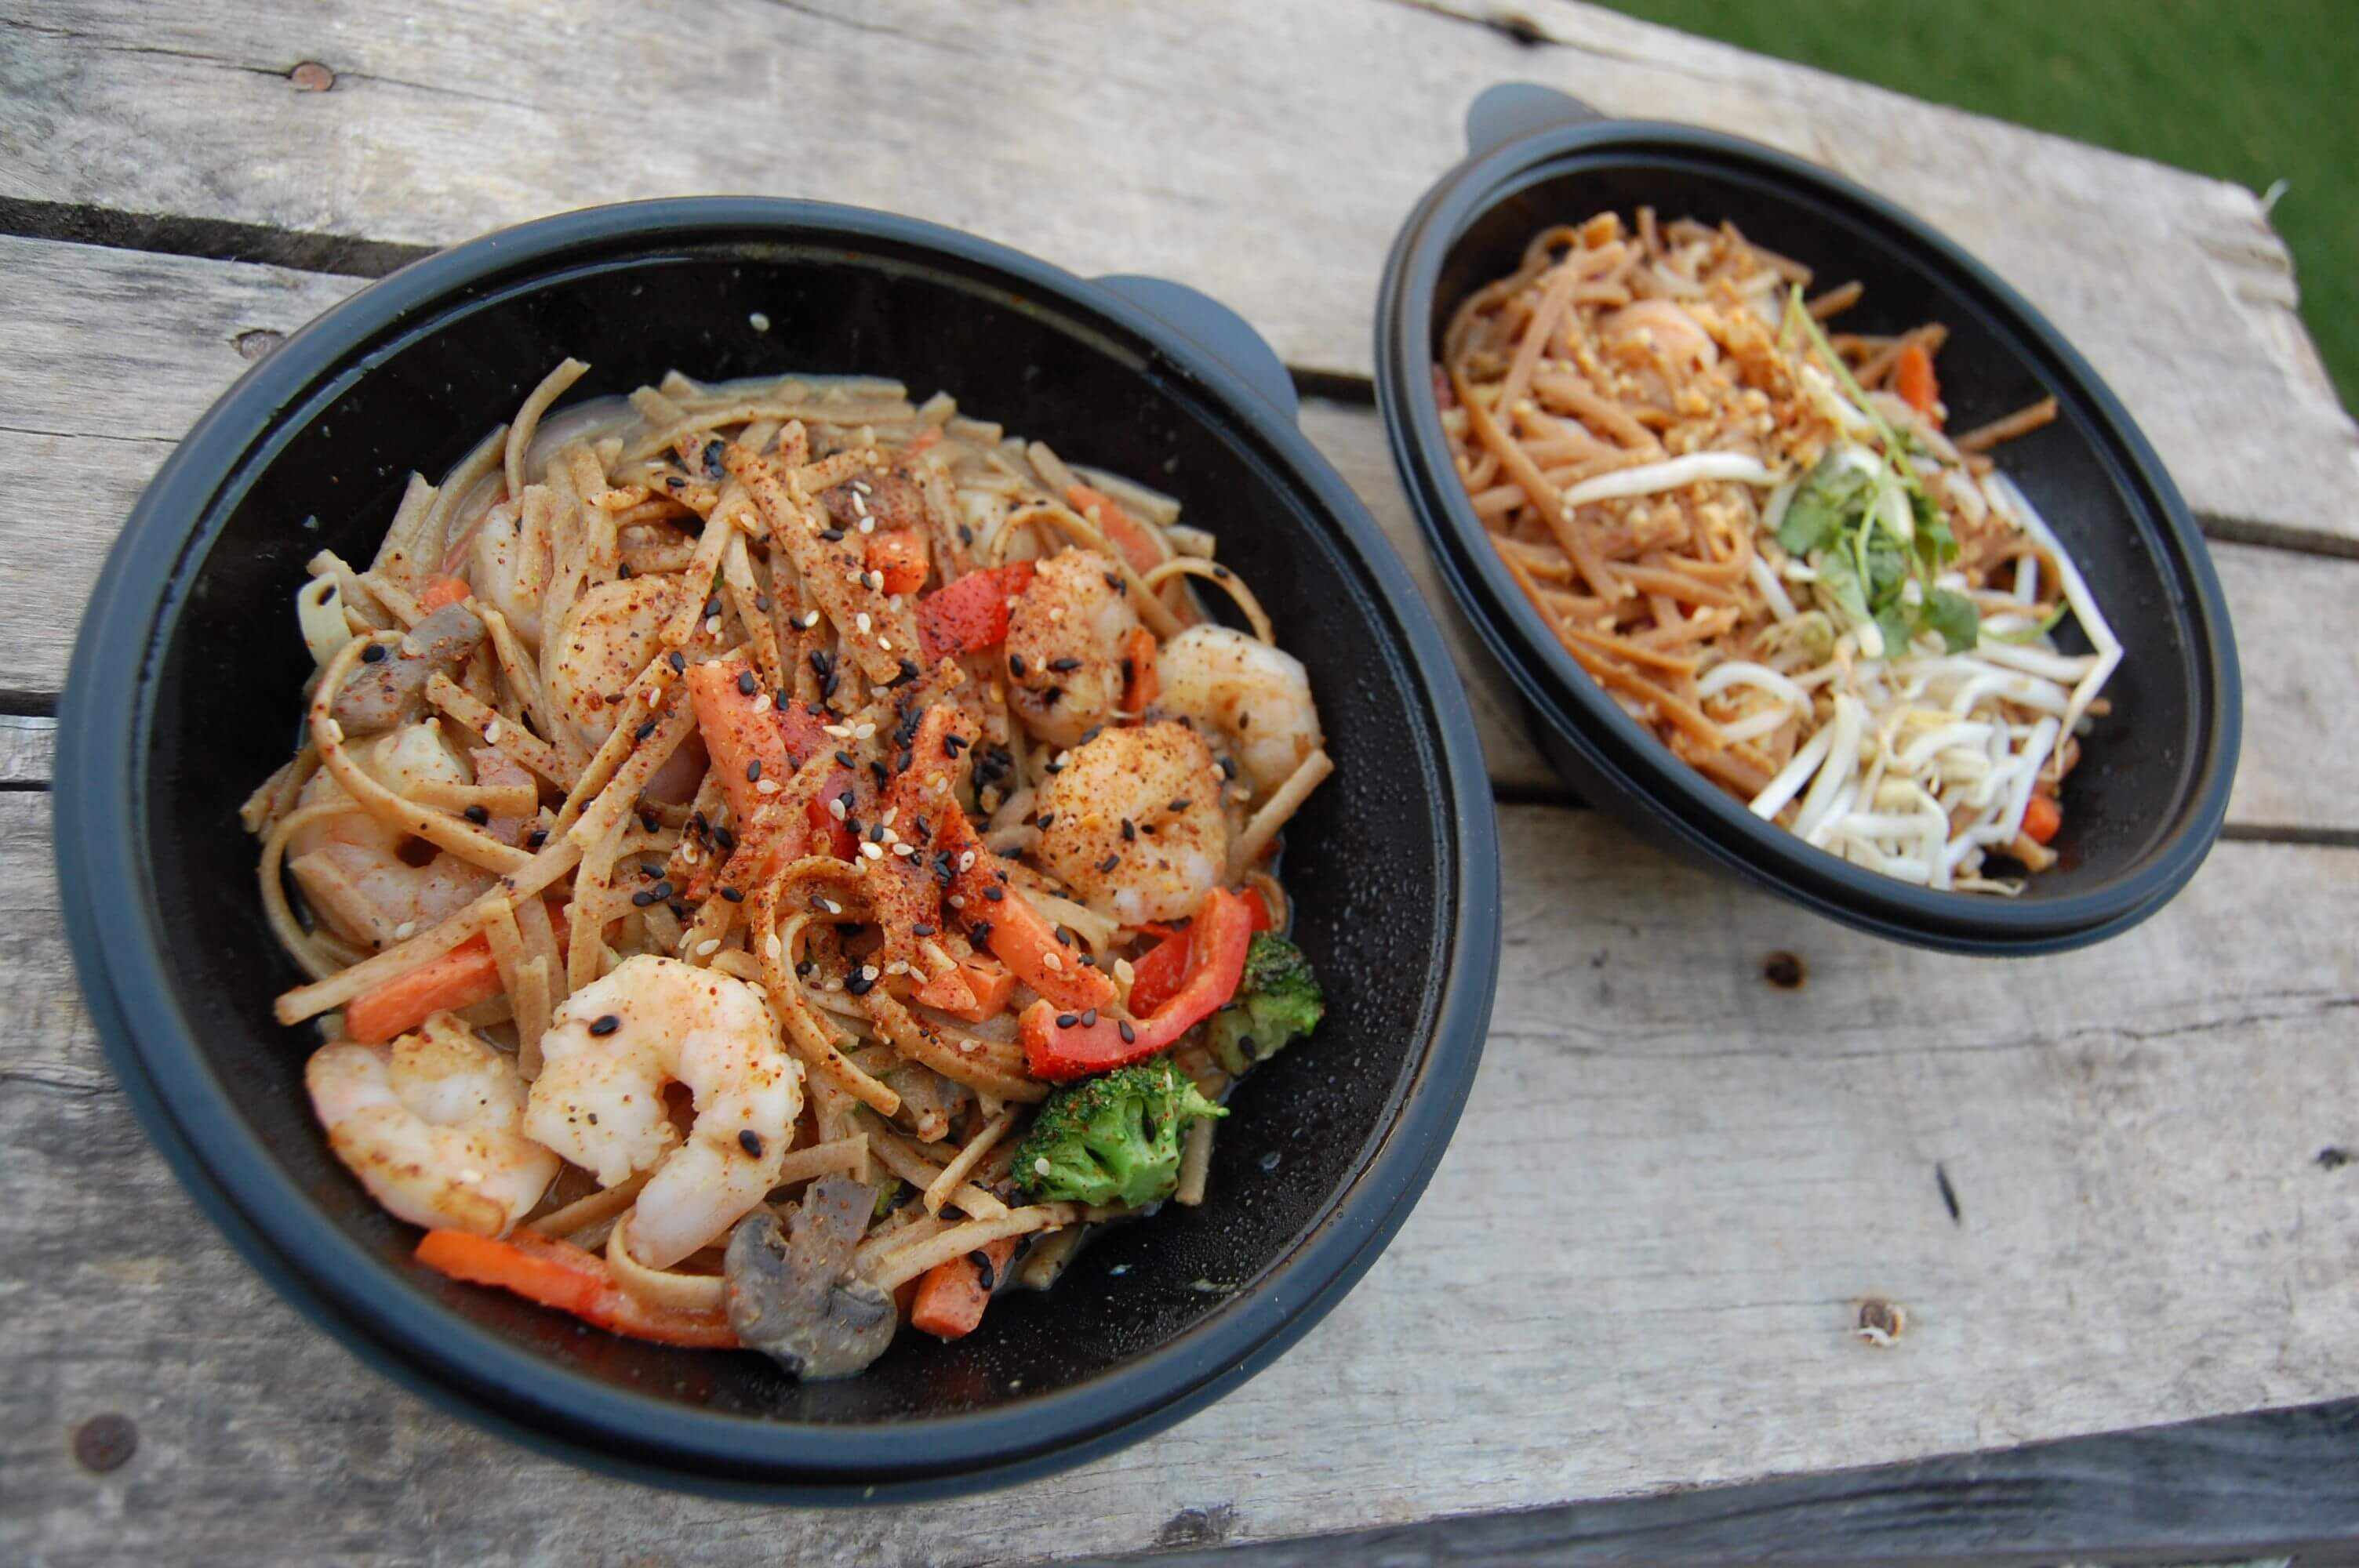 Two bowls of take-out Pad Thai and Curry.